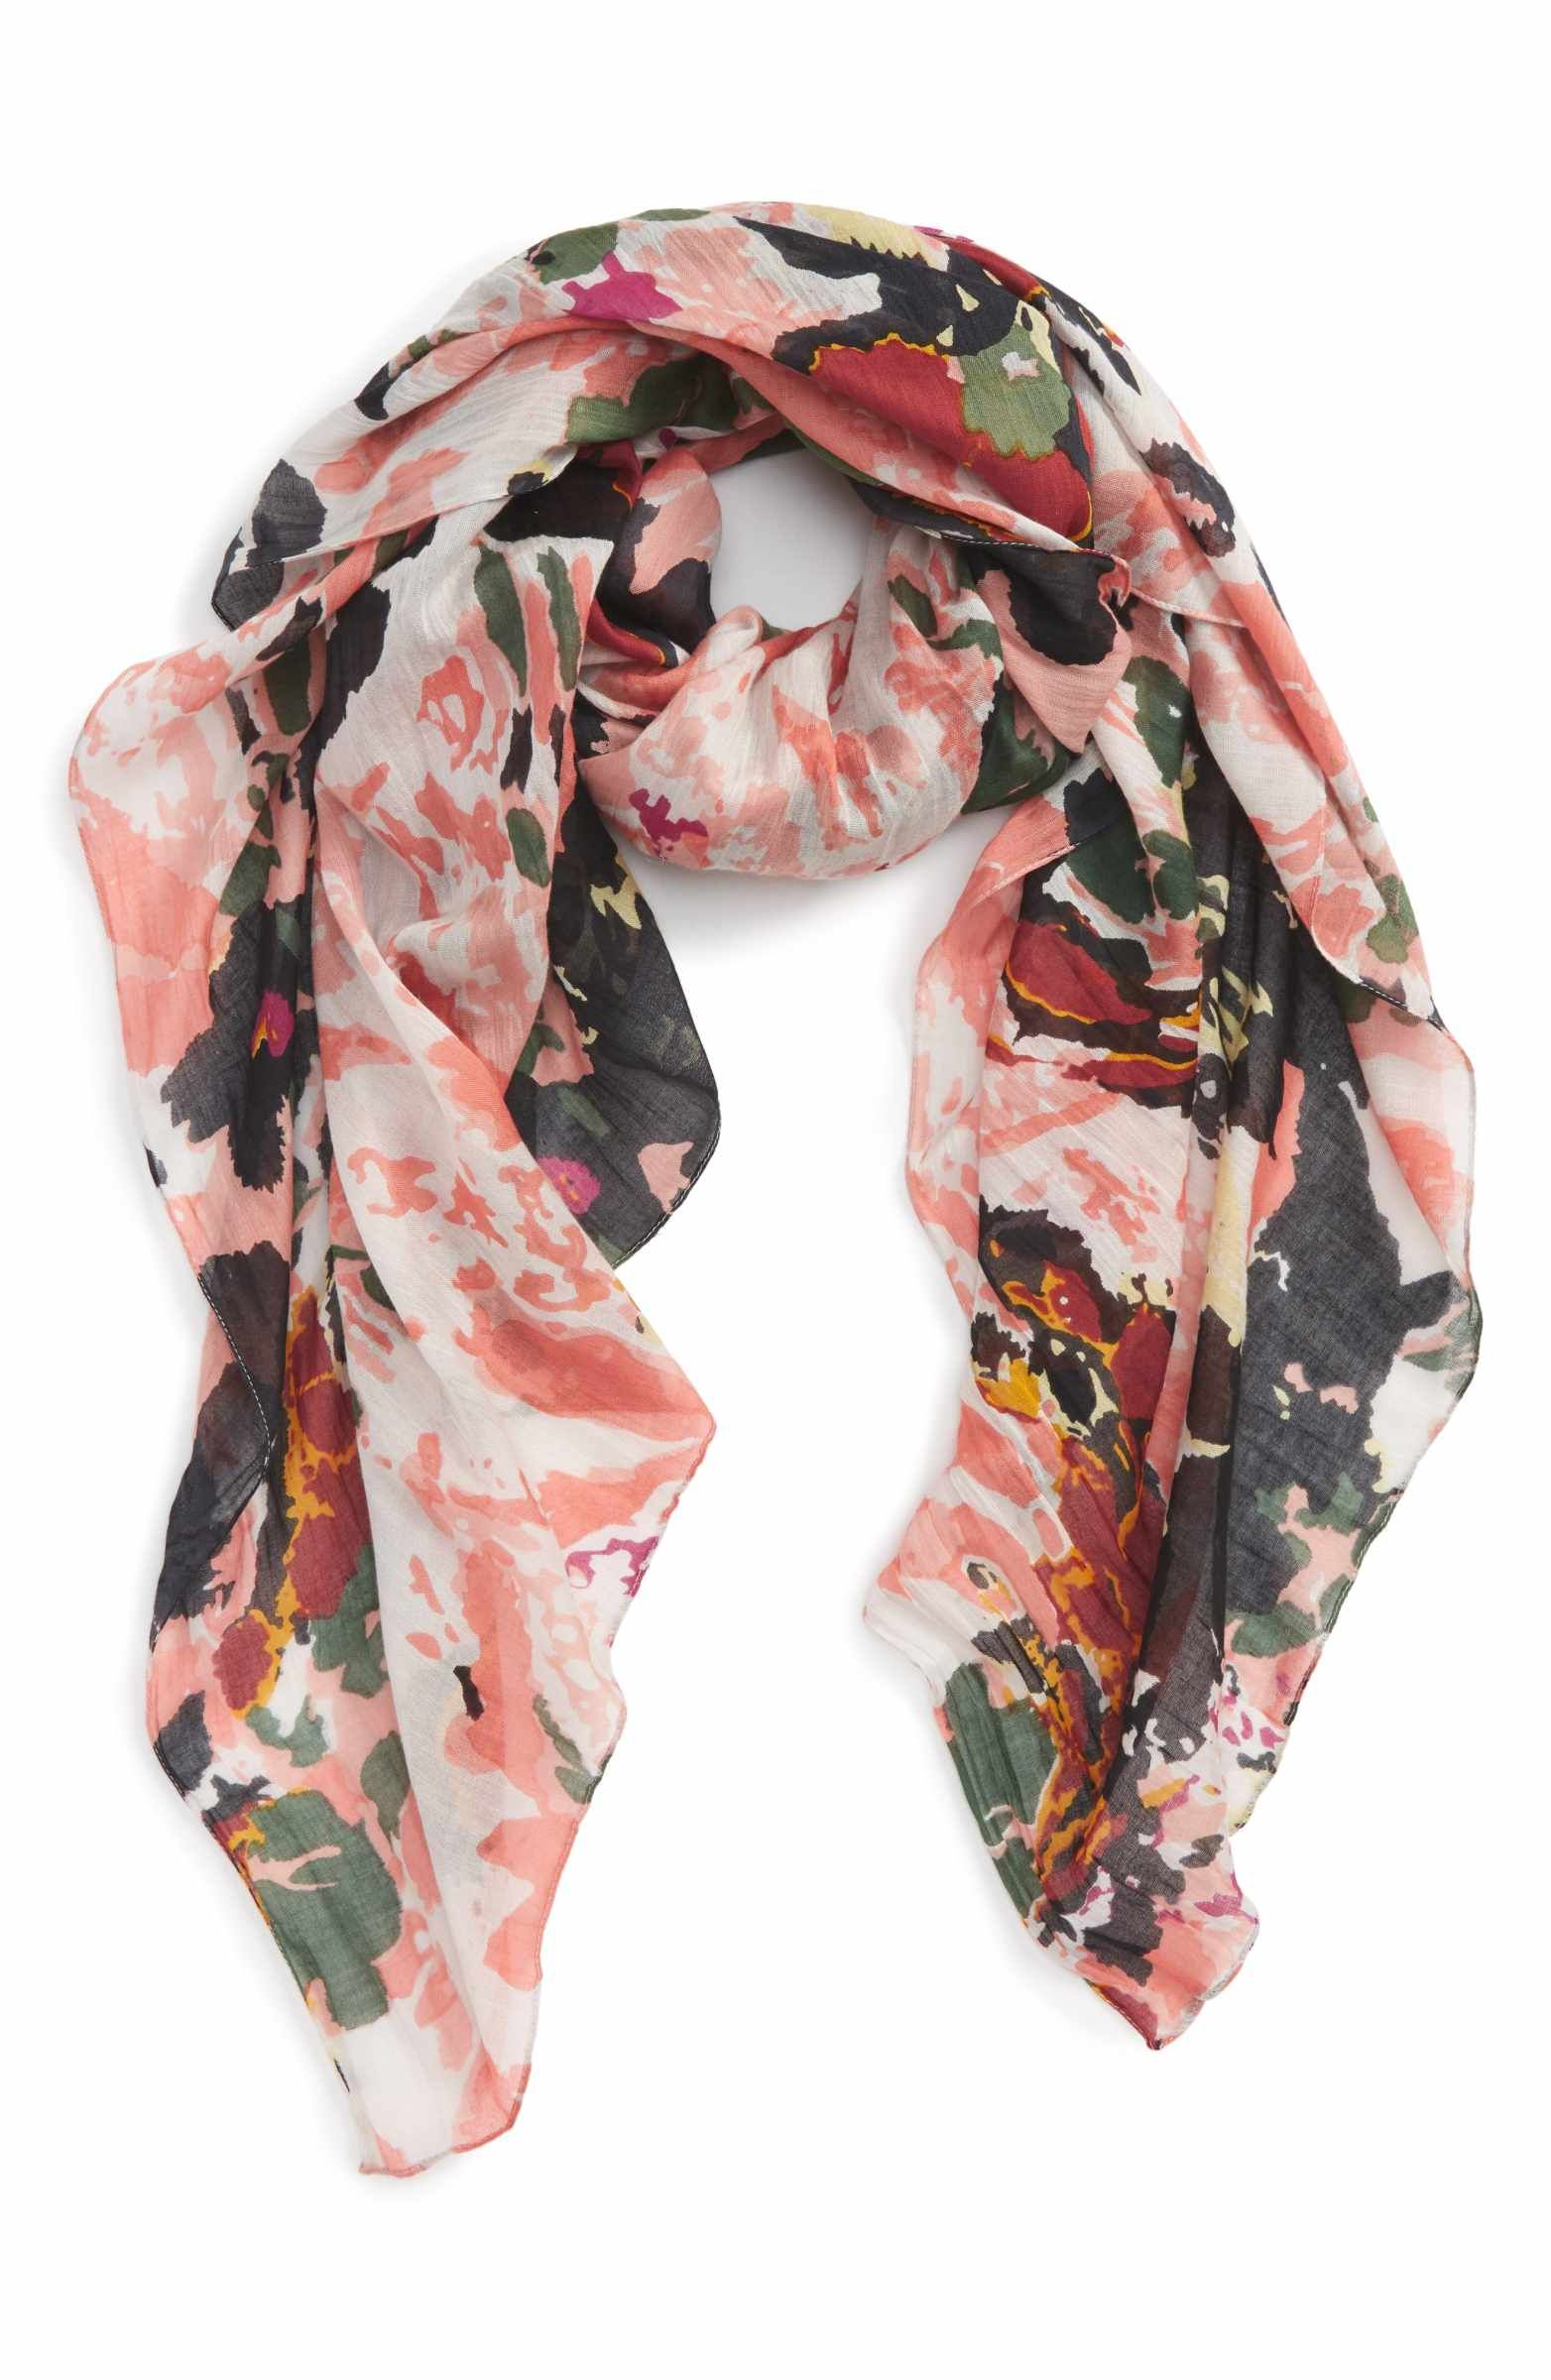 dce004308190 Main Image - Sole Society Abstract Print Scarf   My Style   Pinterest